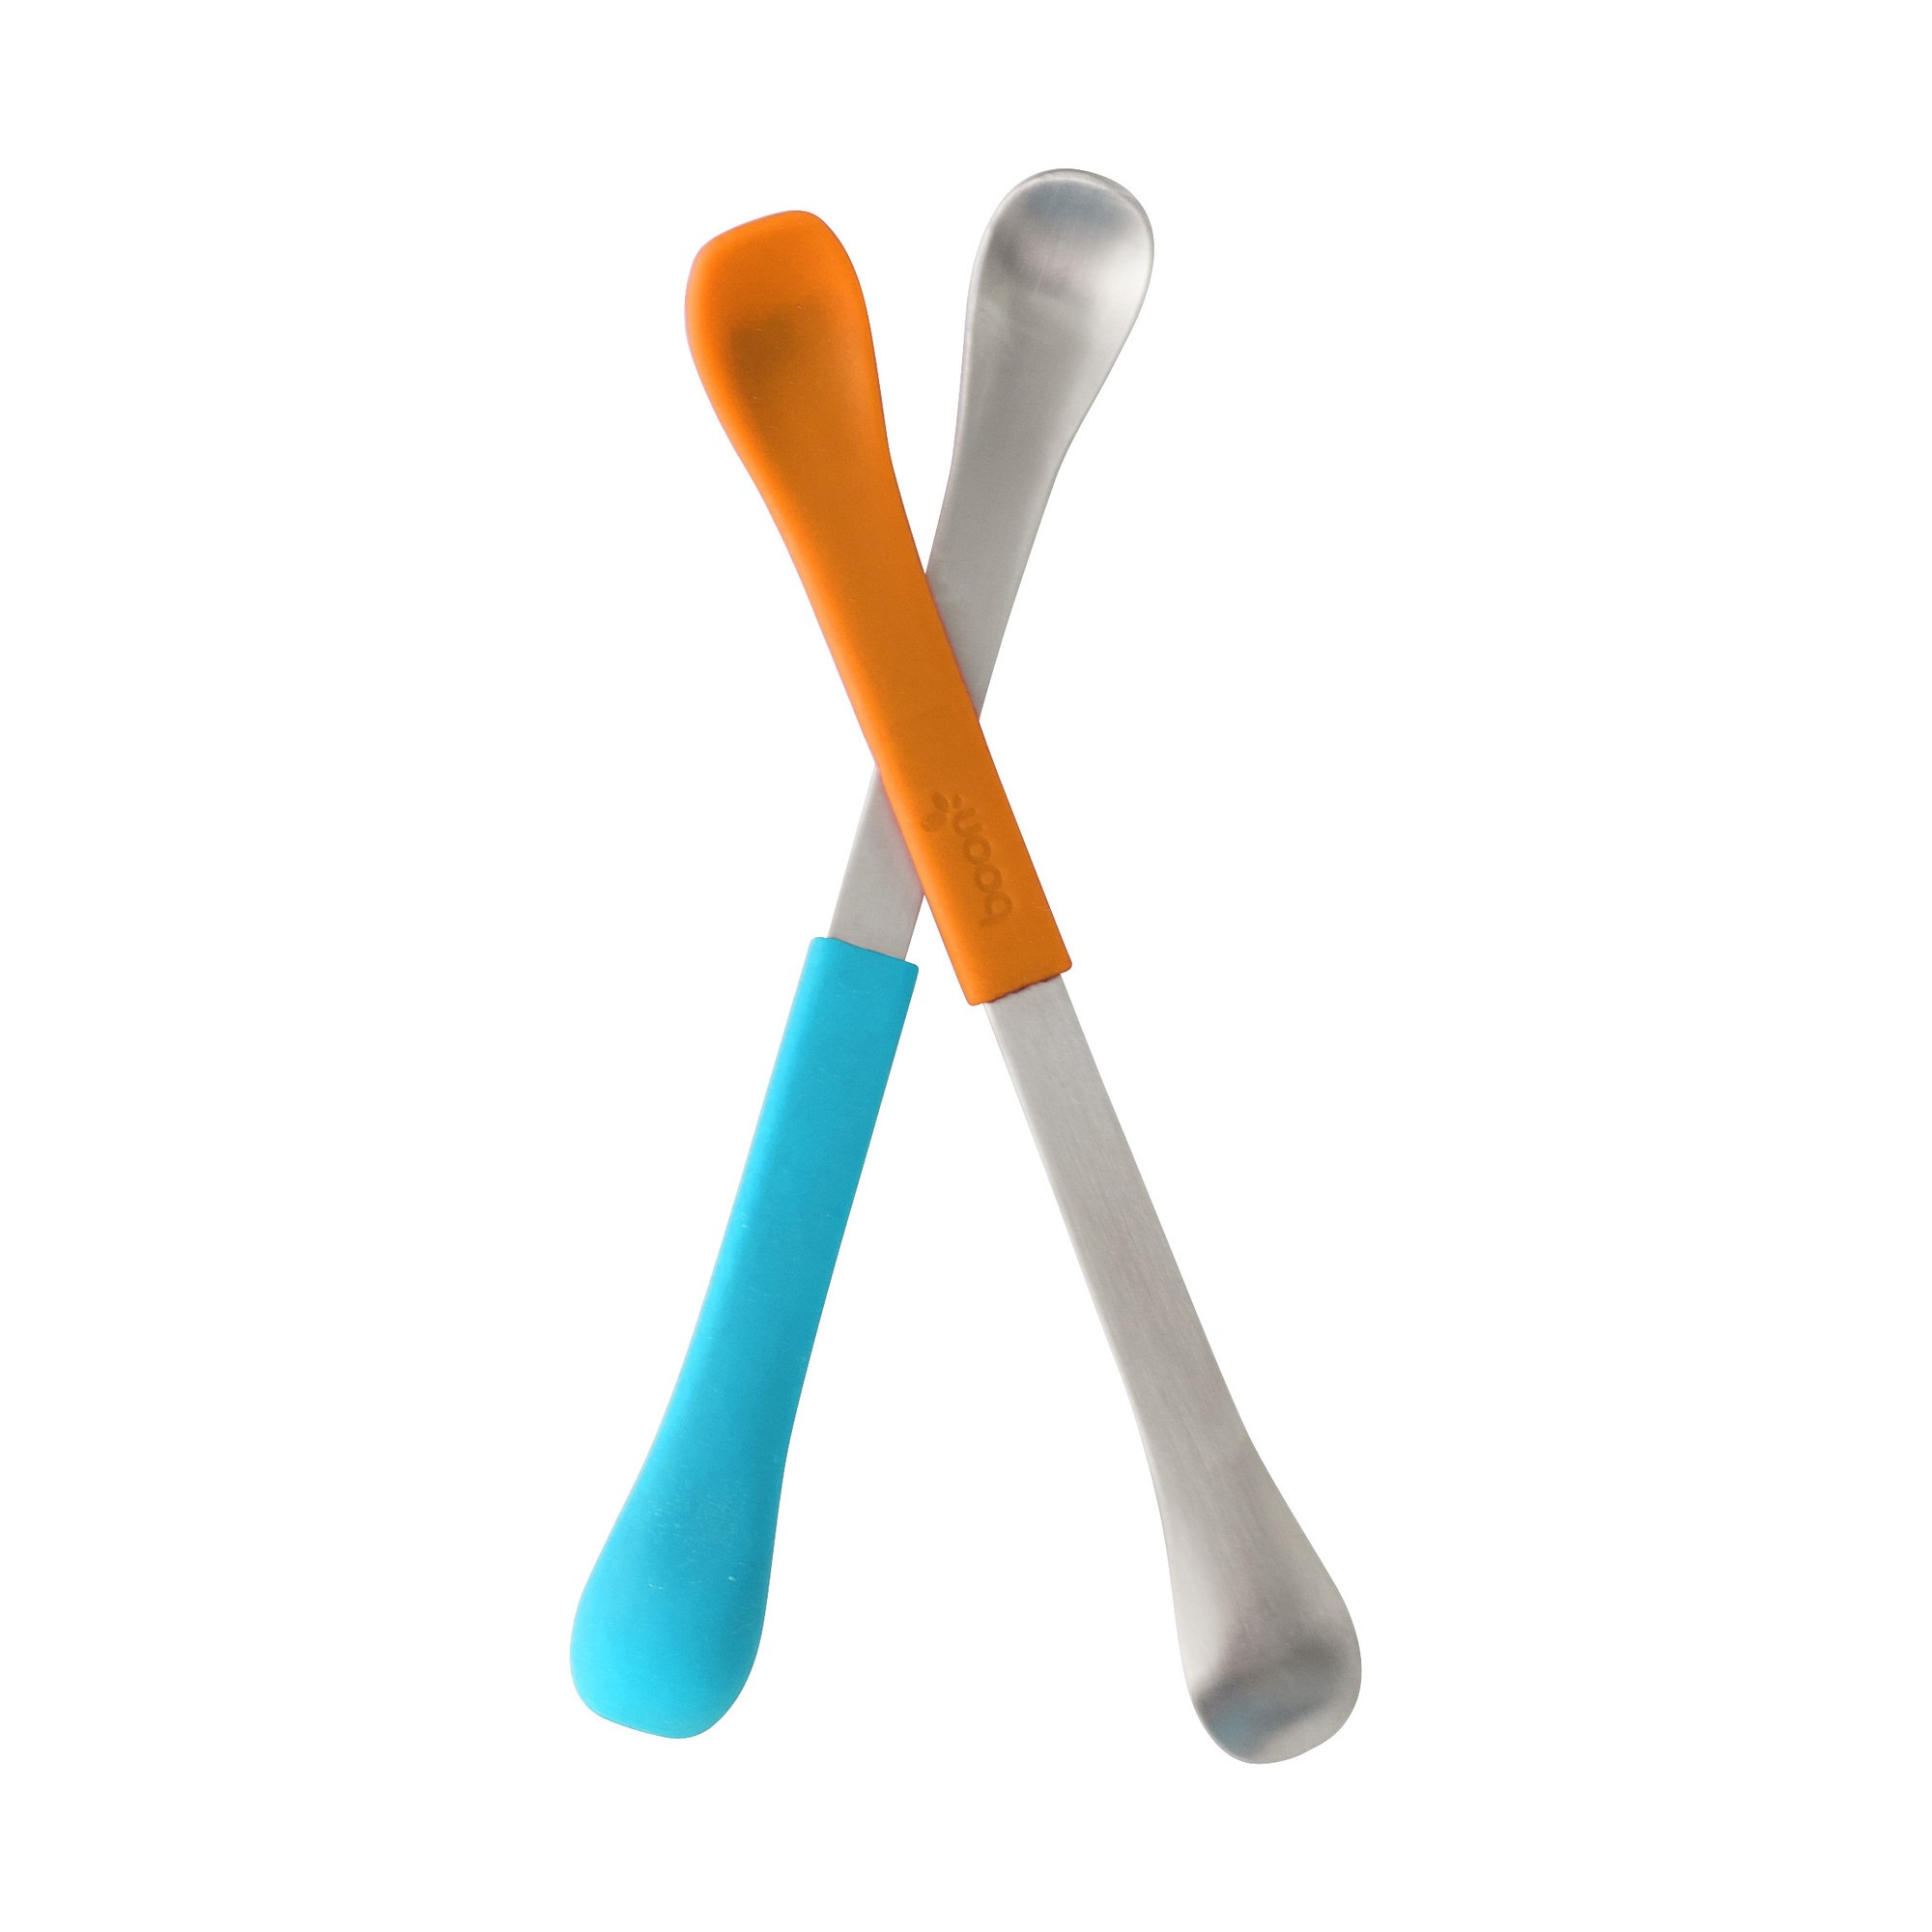 Boon Swap 2-In-1 Baby Spoon, Dual Ended Deeding Utensil, Blue by Boon